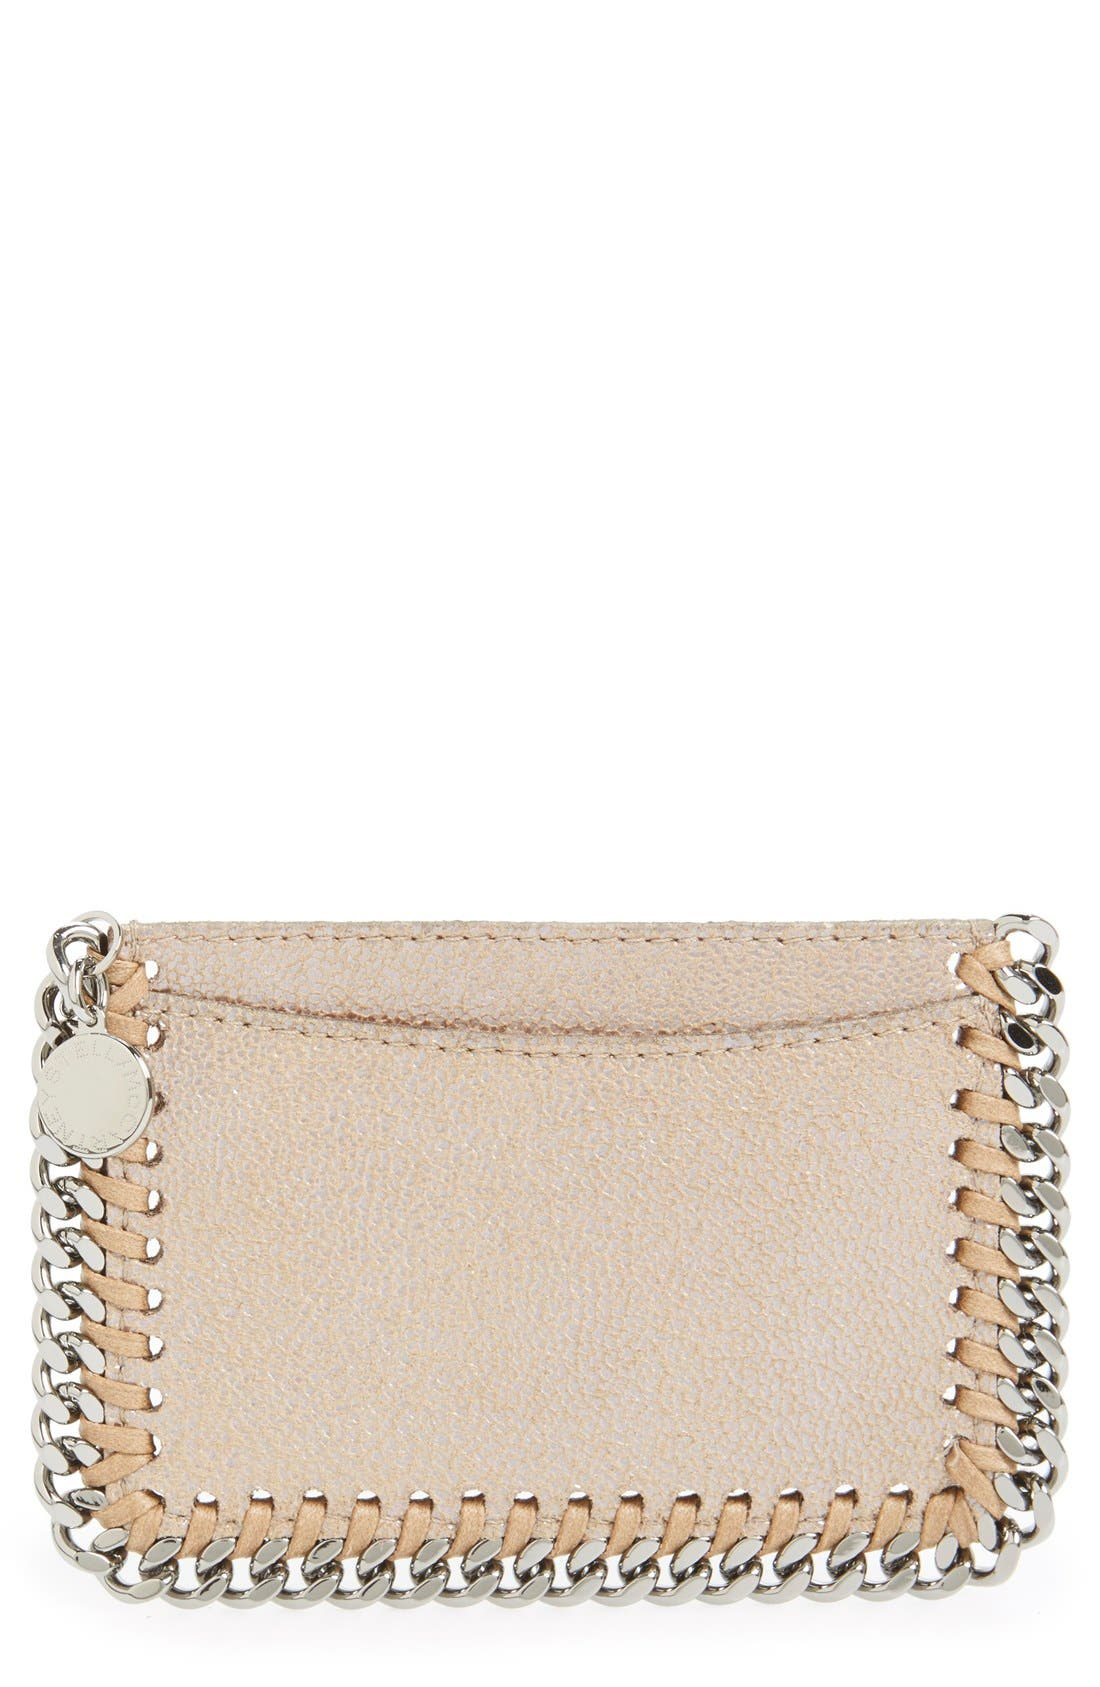 'Falabella - Shaggy Deer' Card Case,                         Main,                         color,